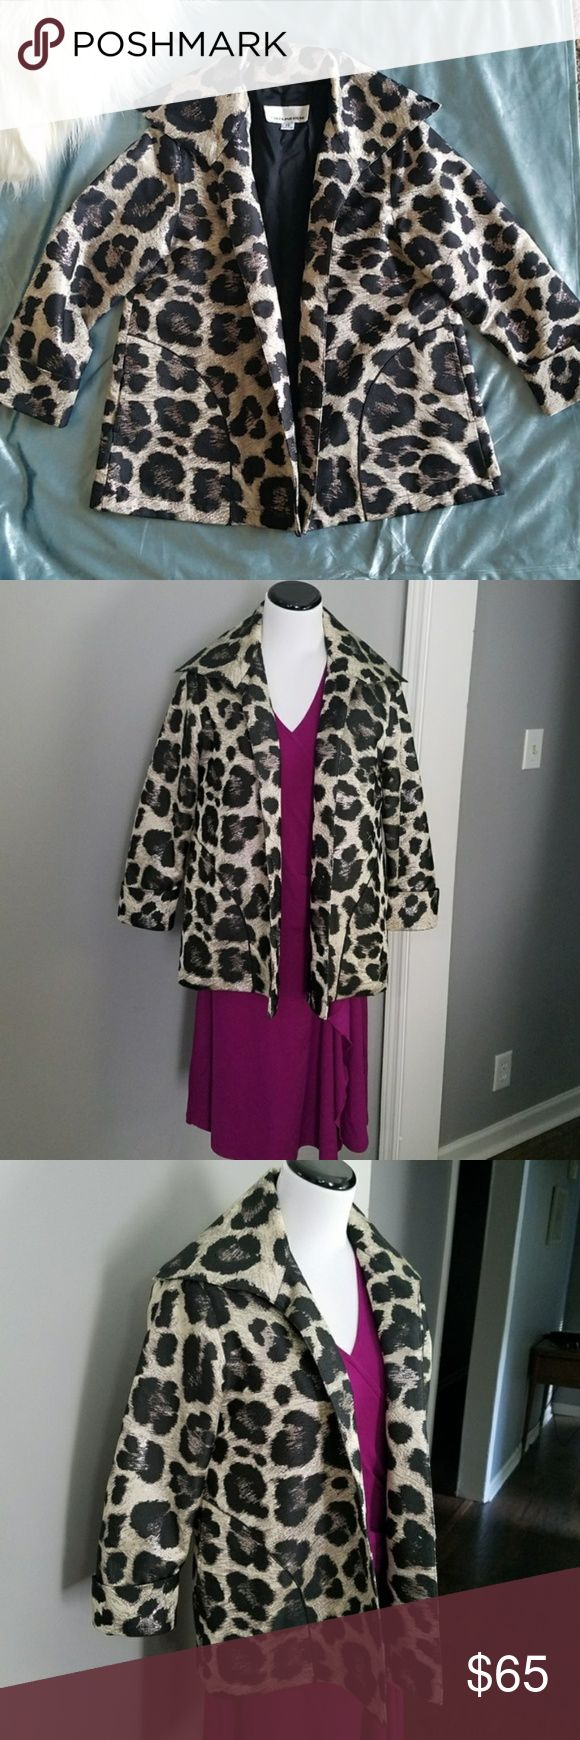 Caroline Rose Jacquard Leopard Jacket Caroline Rose  SIZE XS Open front jacket. Stunning print and fabric. Purchased from Neiman Marcus. Looks fabulous with dresses or adding style to jeans with heels. Excellent condition. Caroline Rose Jackets & Coats